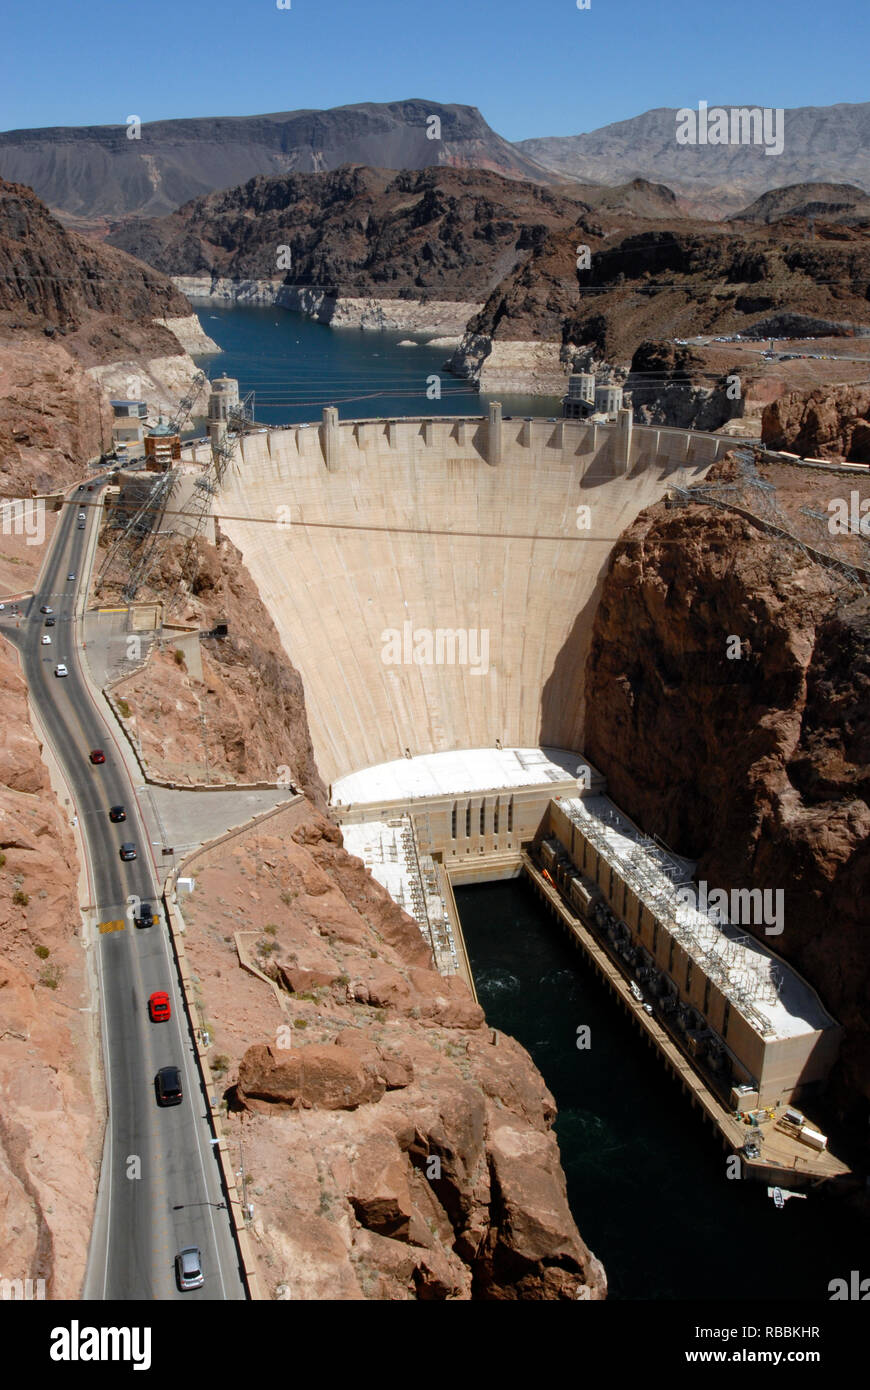 Vertical image showing the Hoover Dam and a portion of Lake Mead at the Arizona-Nevada border. The civil engineering landmark was dedicated in 1935. - Stock Image